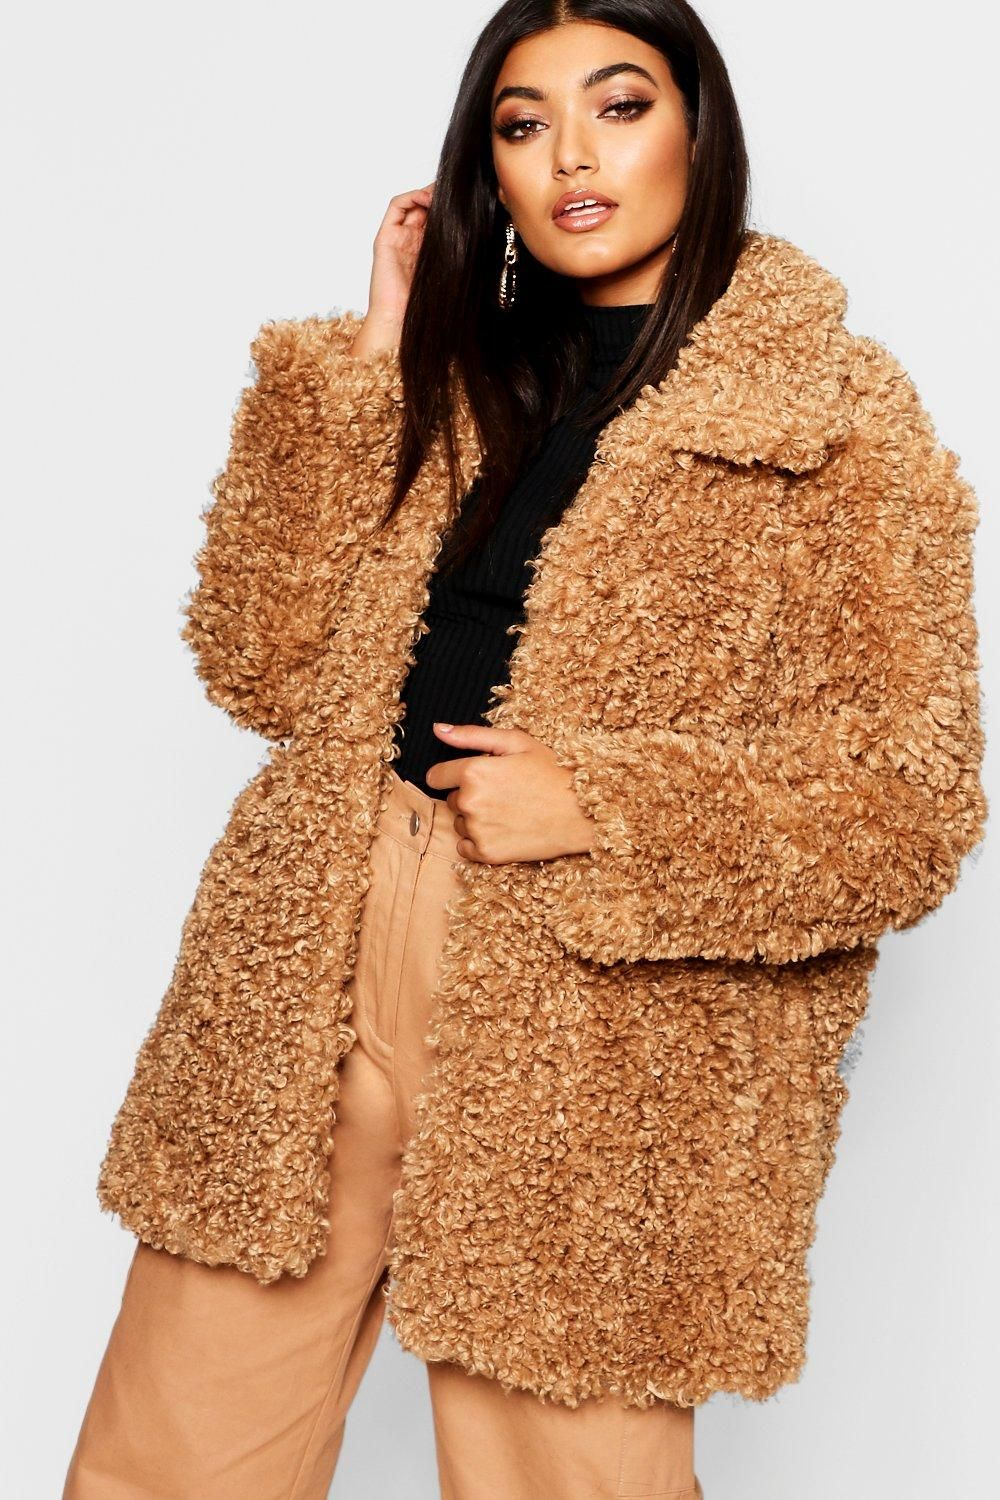 71a7f90aee186 ... latest coats and jackets and get out-there with your outerwear Breathe  life into your new season layering with the latest coats and jackets from  boohoo.